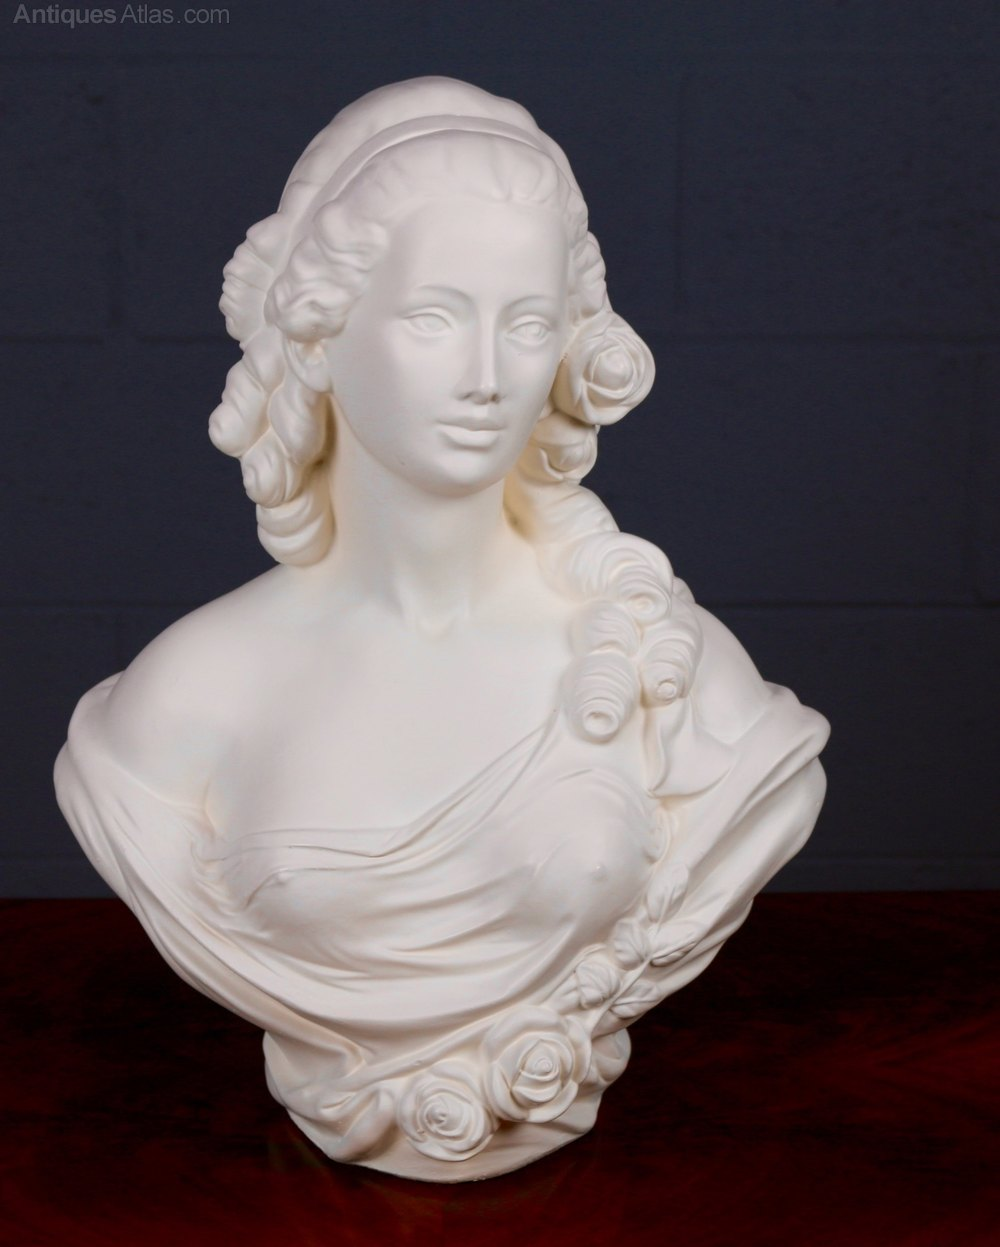 Antiques Atlas Parian Ware Bust